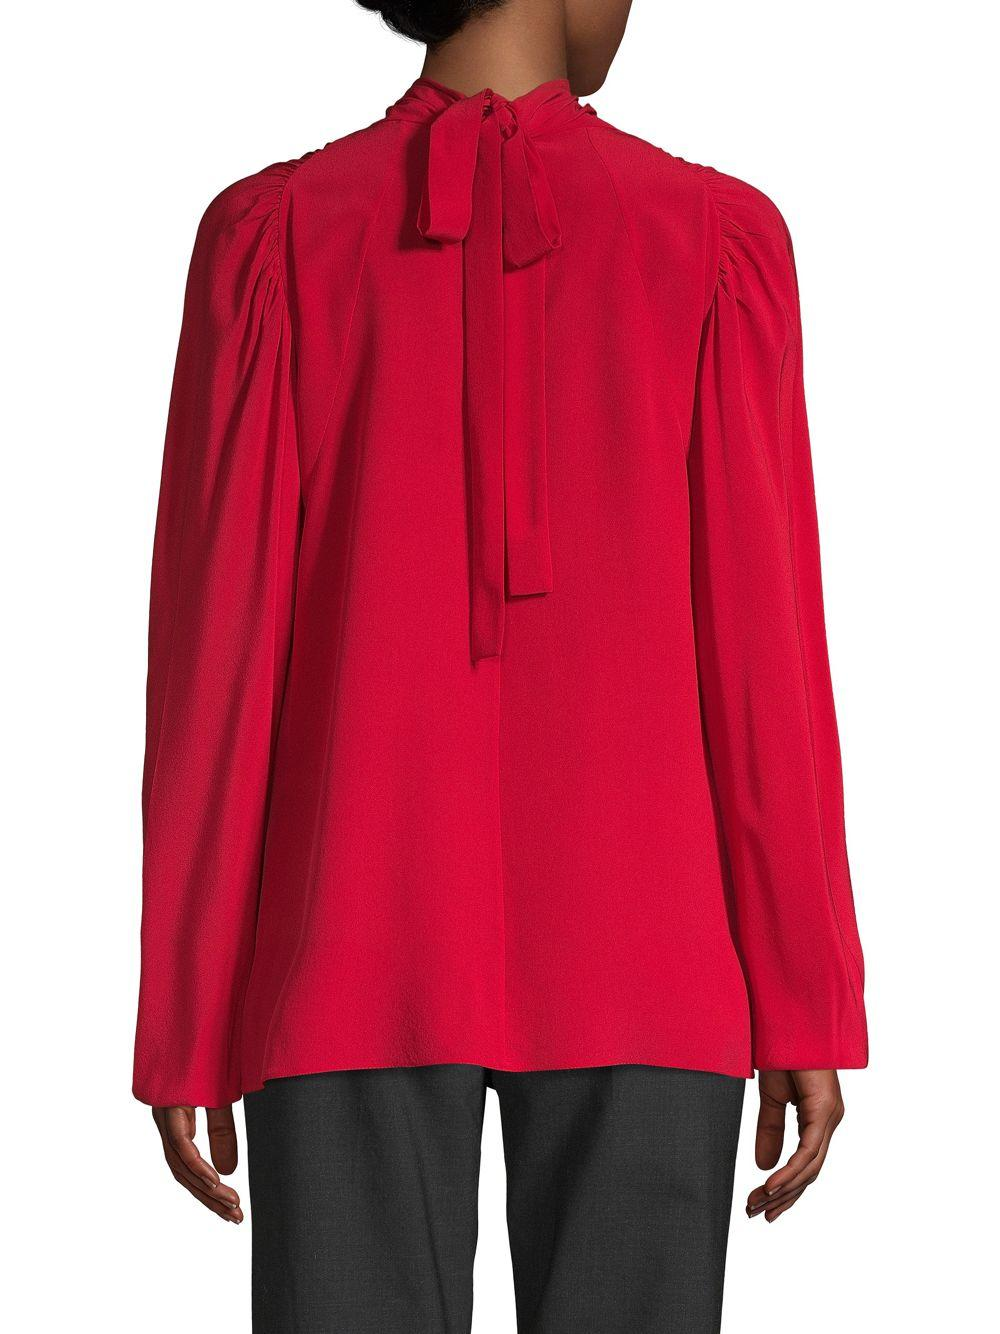 b2a2b1e6255a9e Prada - Red Bow-back Silk Blouse - Lyst. View fullscreen